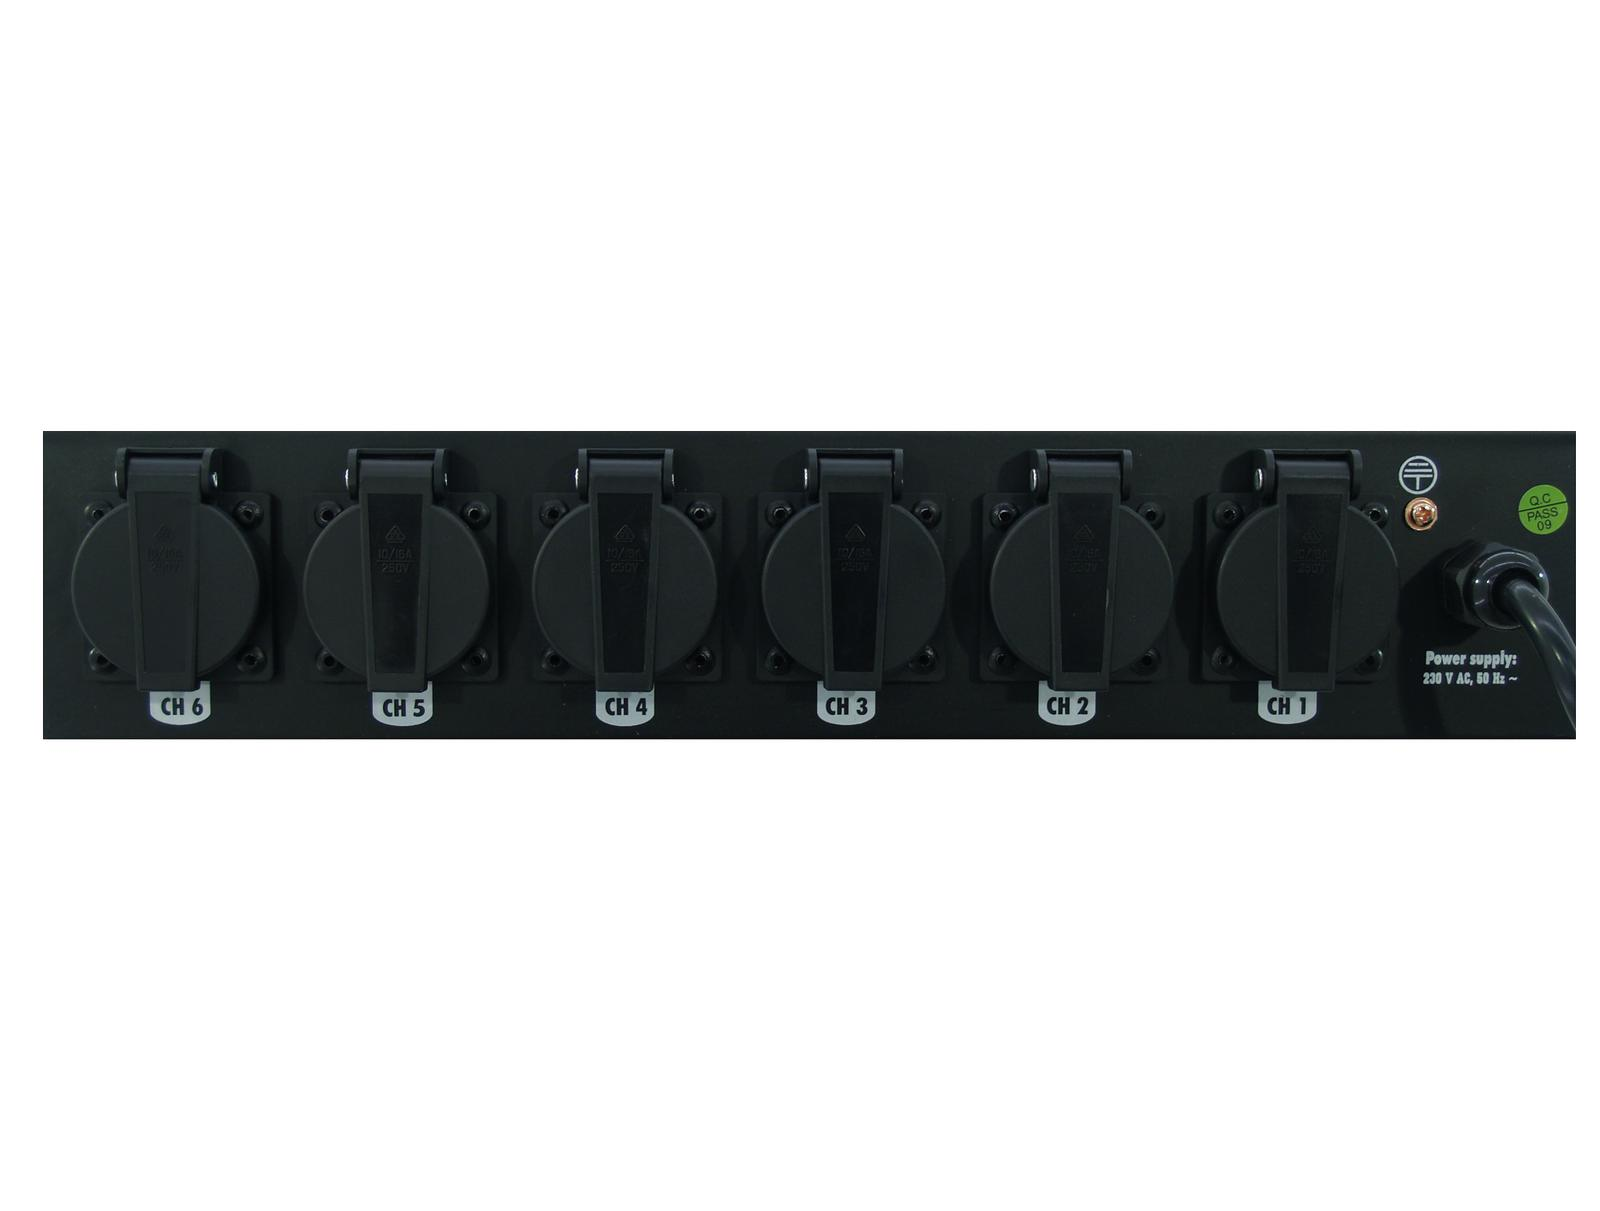 Centralina Luci Dimmer Comando Board 6-S With 6x Safety-Plugs Eurolite